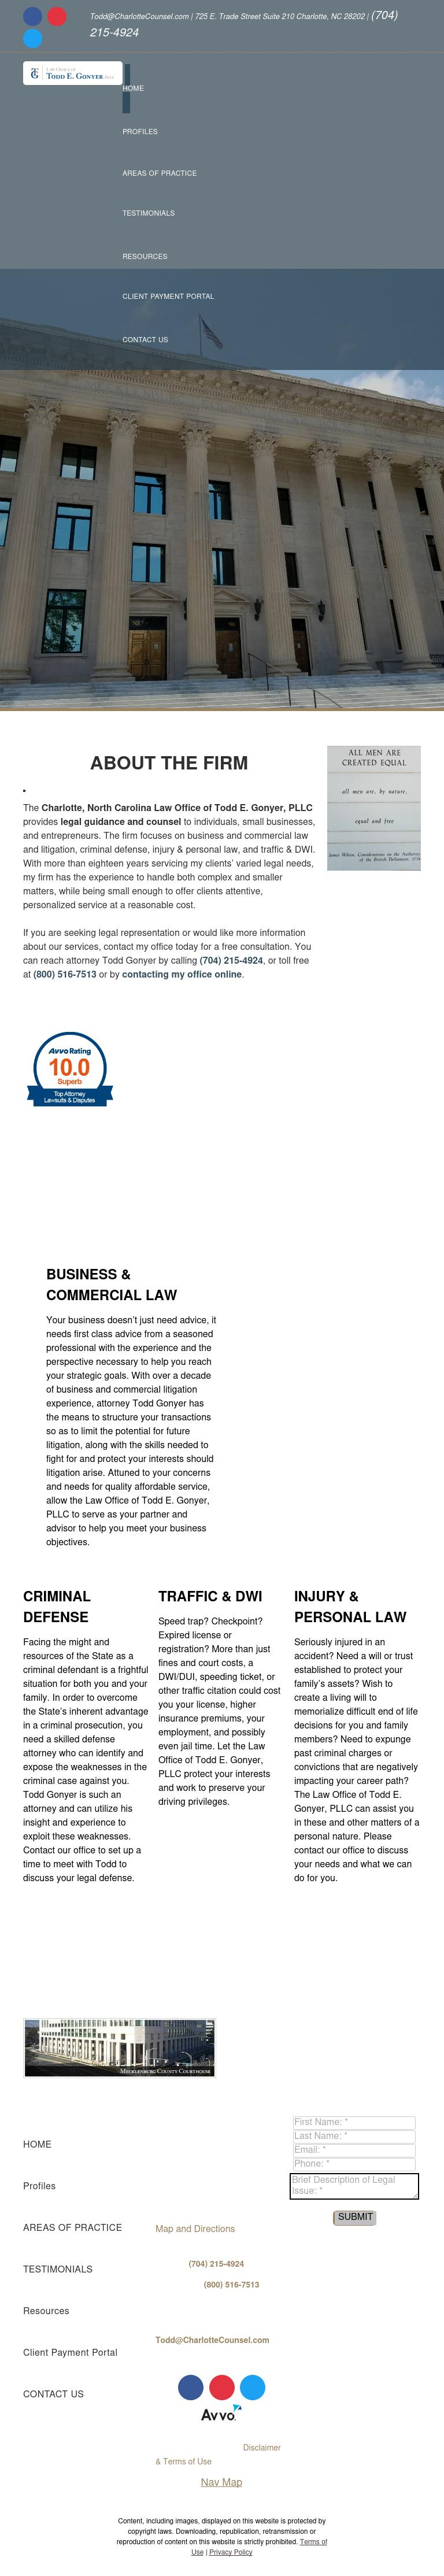 Law Office of Todd E. Gonyer, PLLC - Charlotte NC Lawyers